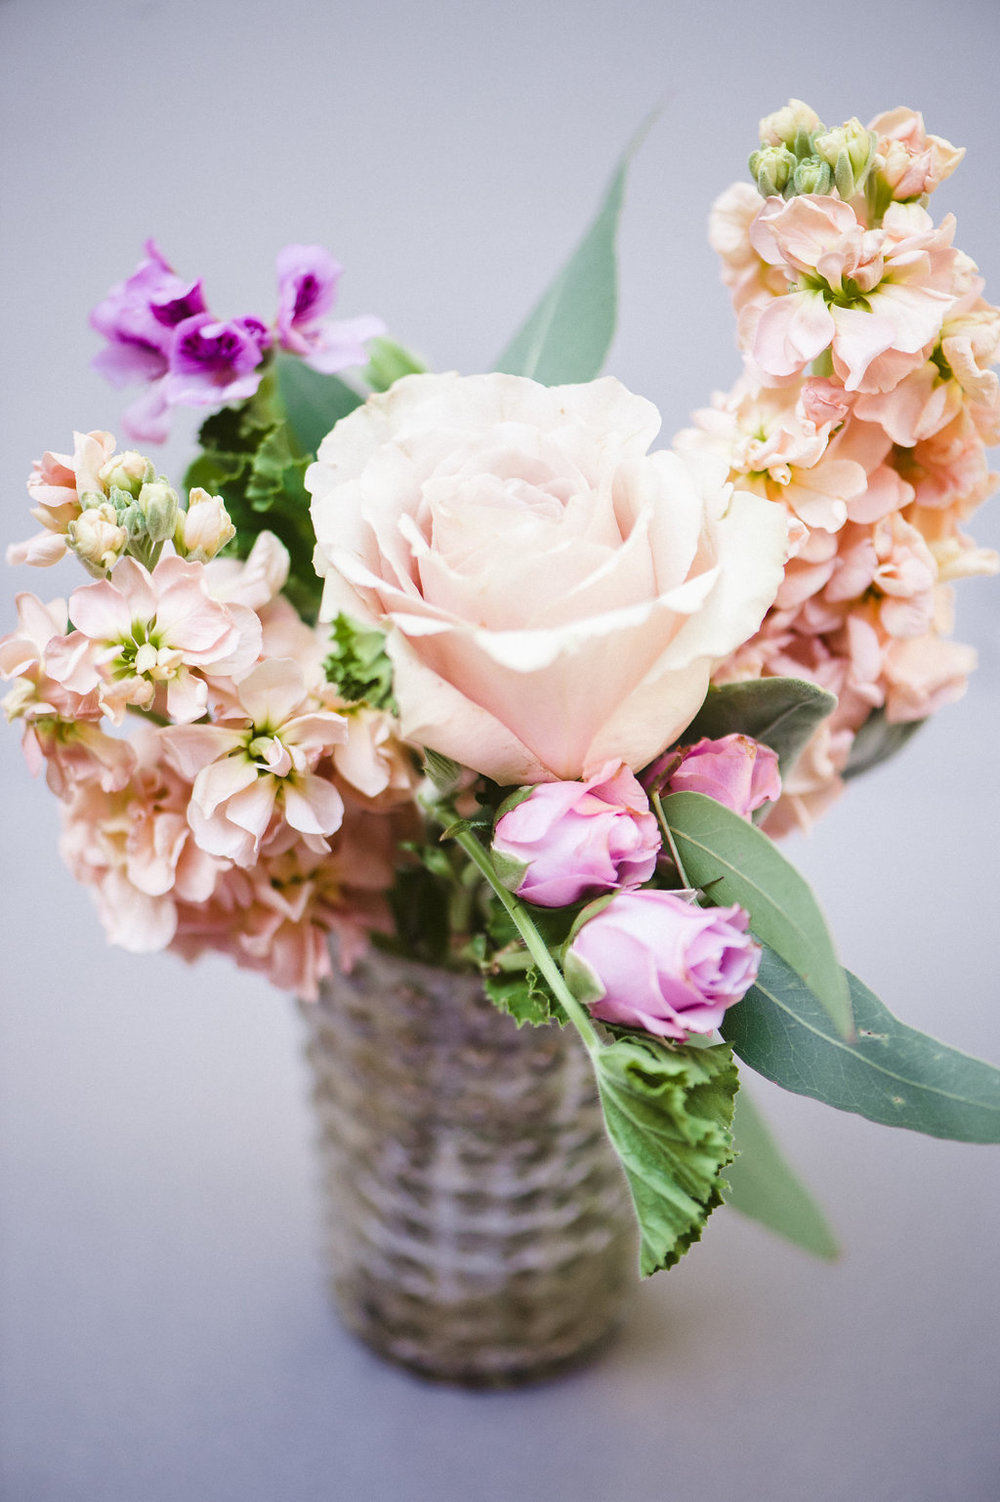 Flowers by Fleur Inc at The Ivy Room, photo by Amanda Megan Miller Photography